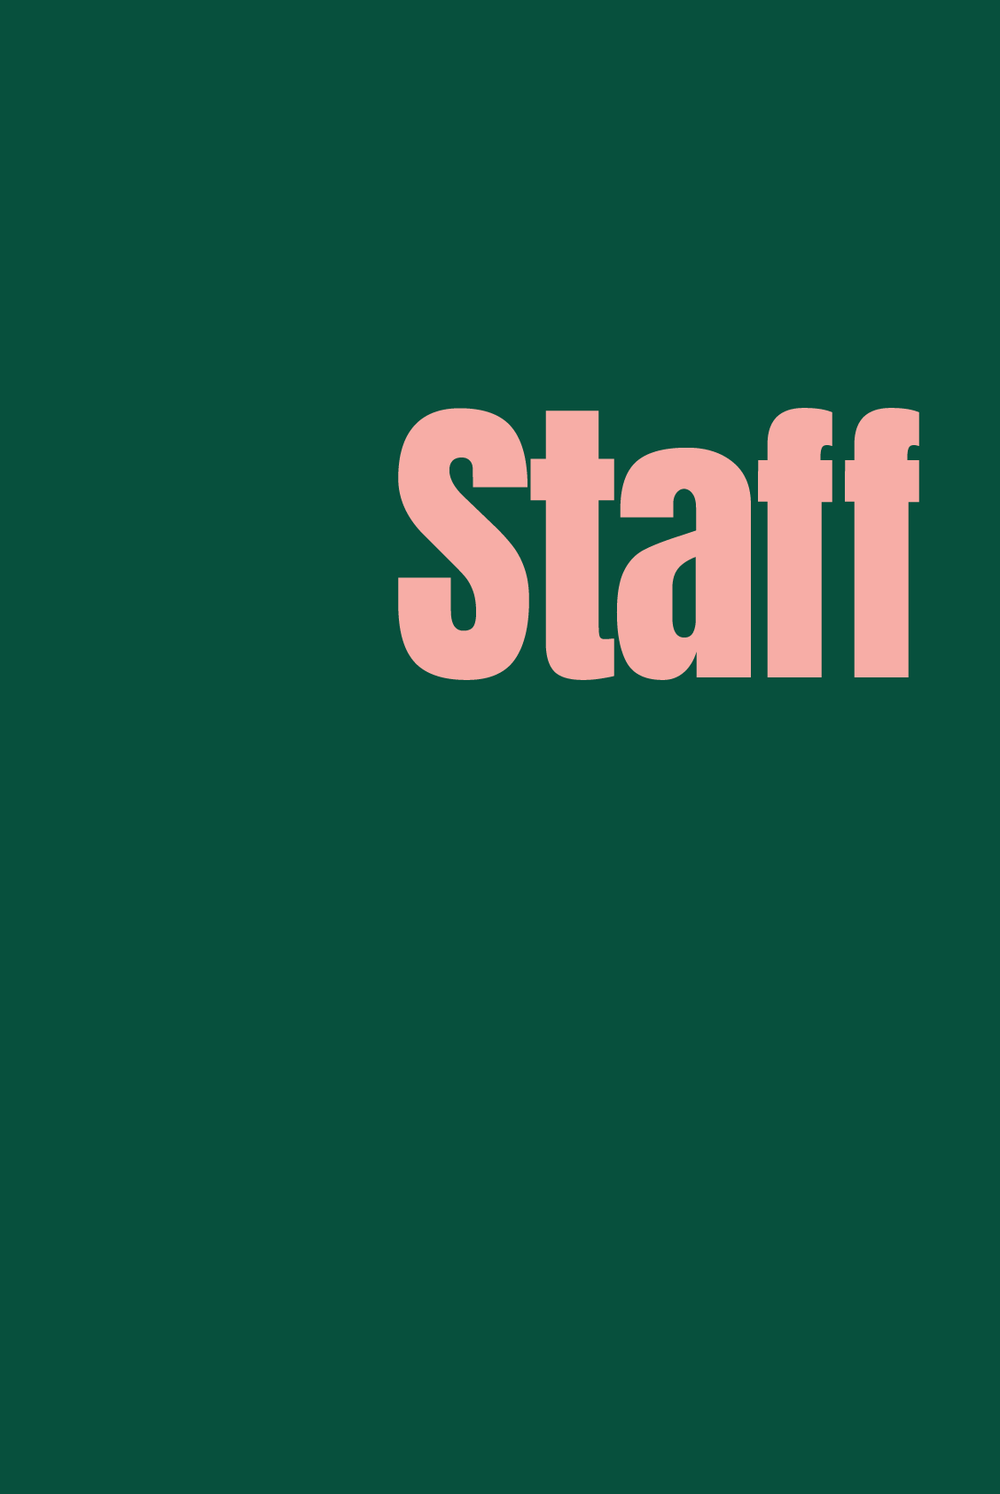 Staff-51.png